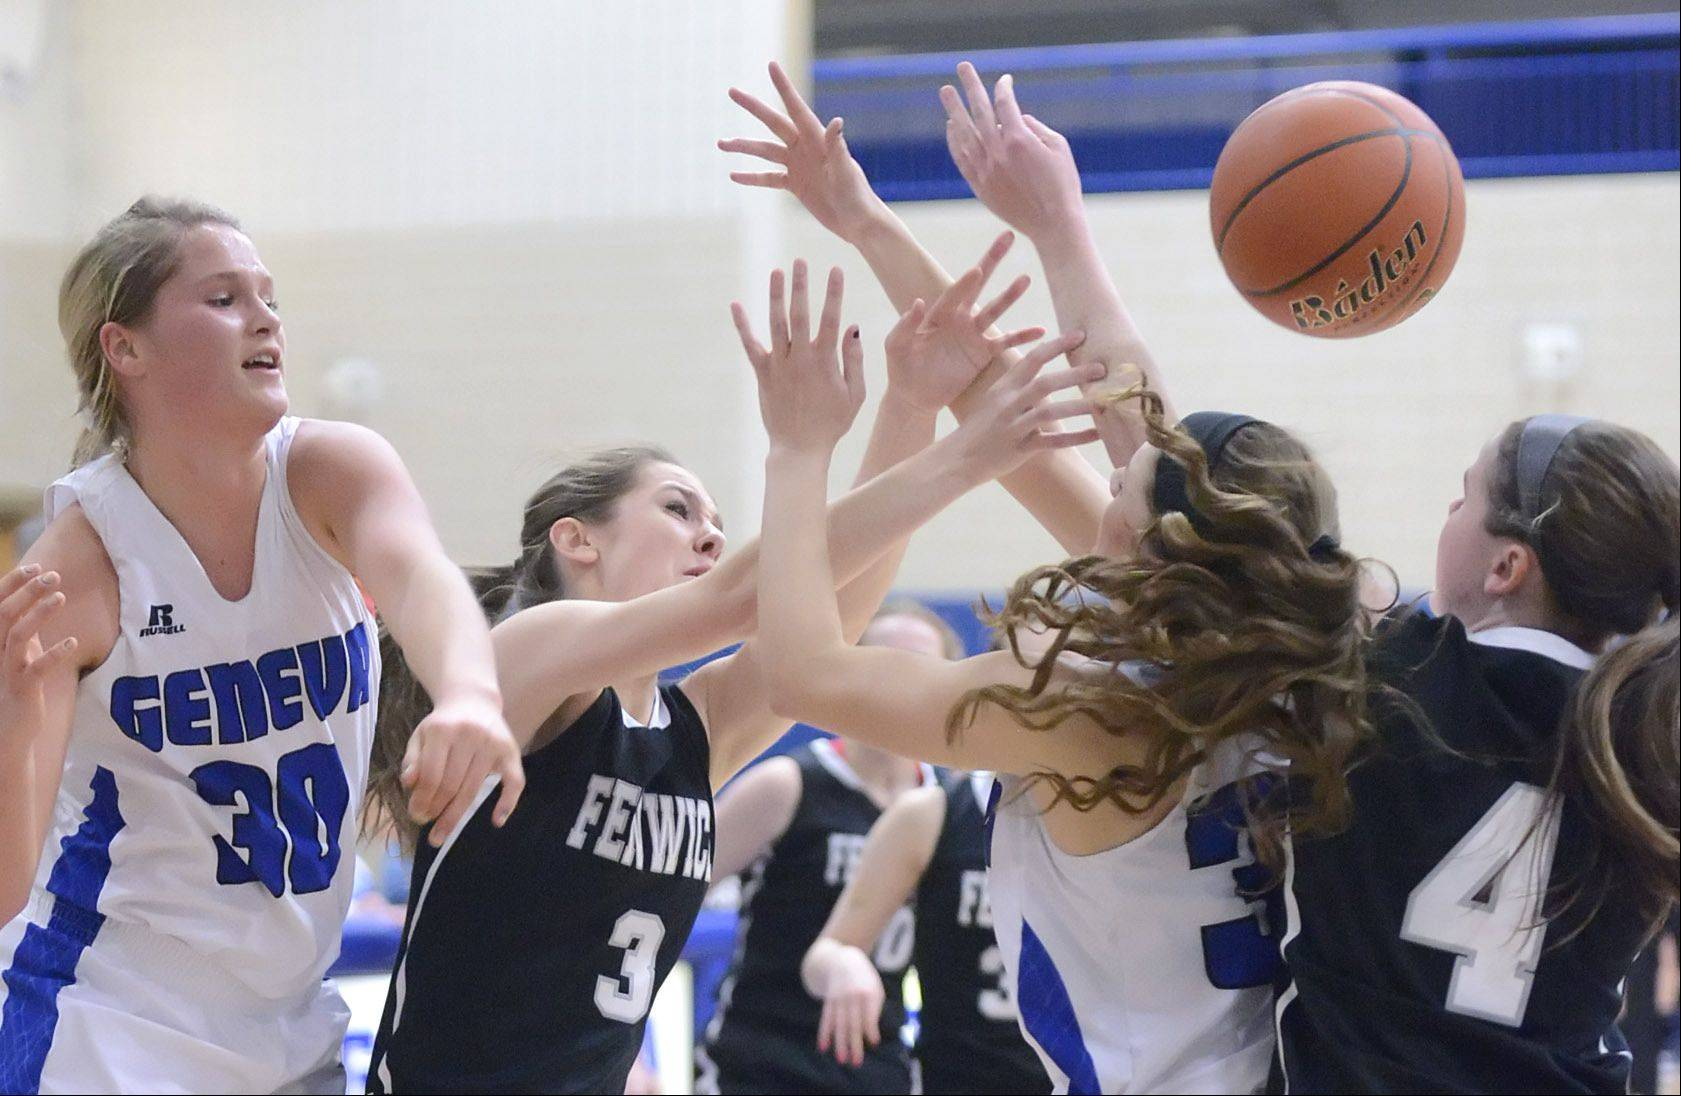 Geneva�s Janie McCloughan and Madeline Dunn scramble for a loose ball with Fenwick�s Katie Dvorak and Megan Hussey in the second quarter.